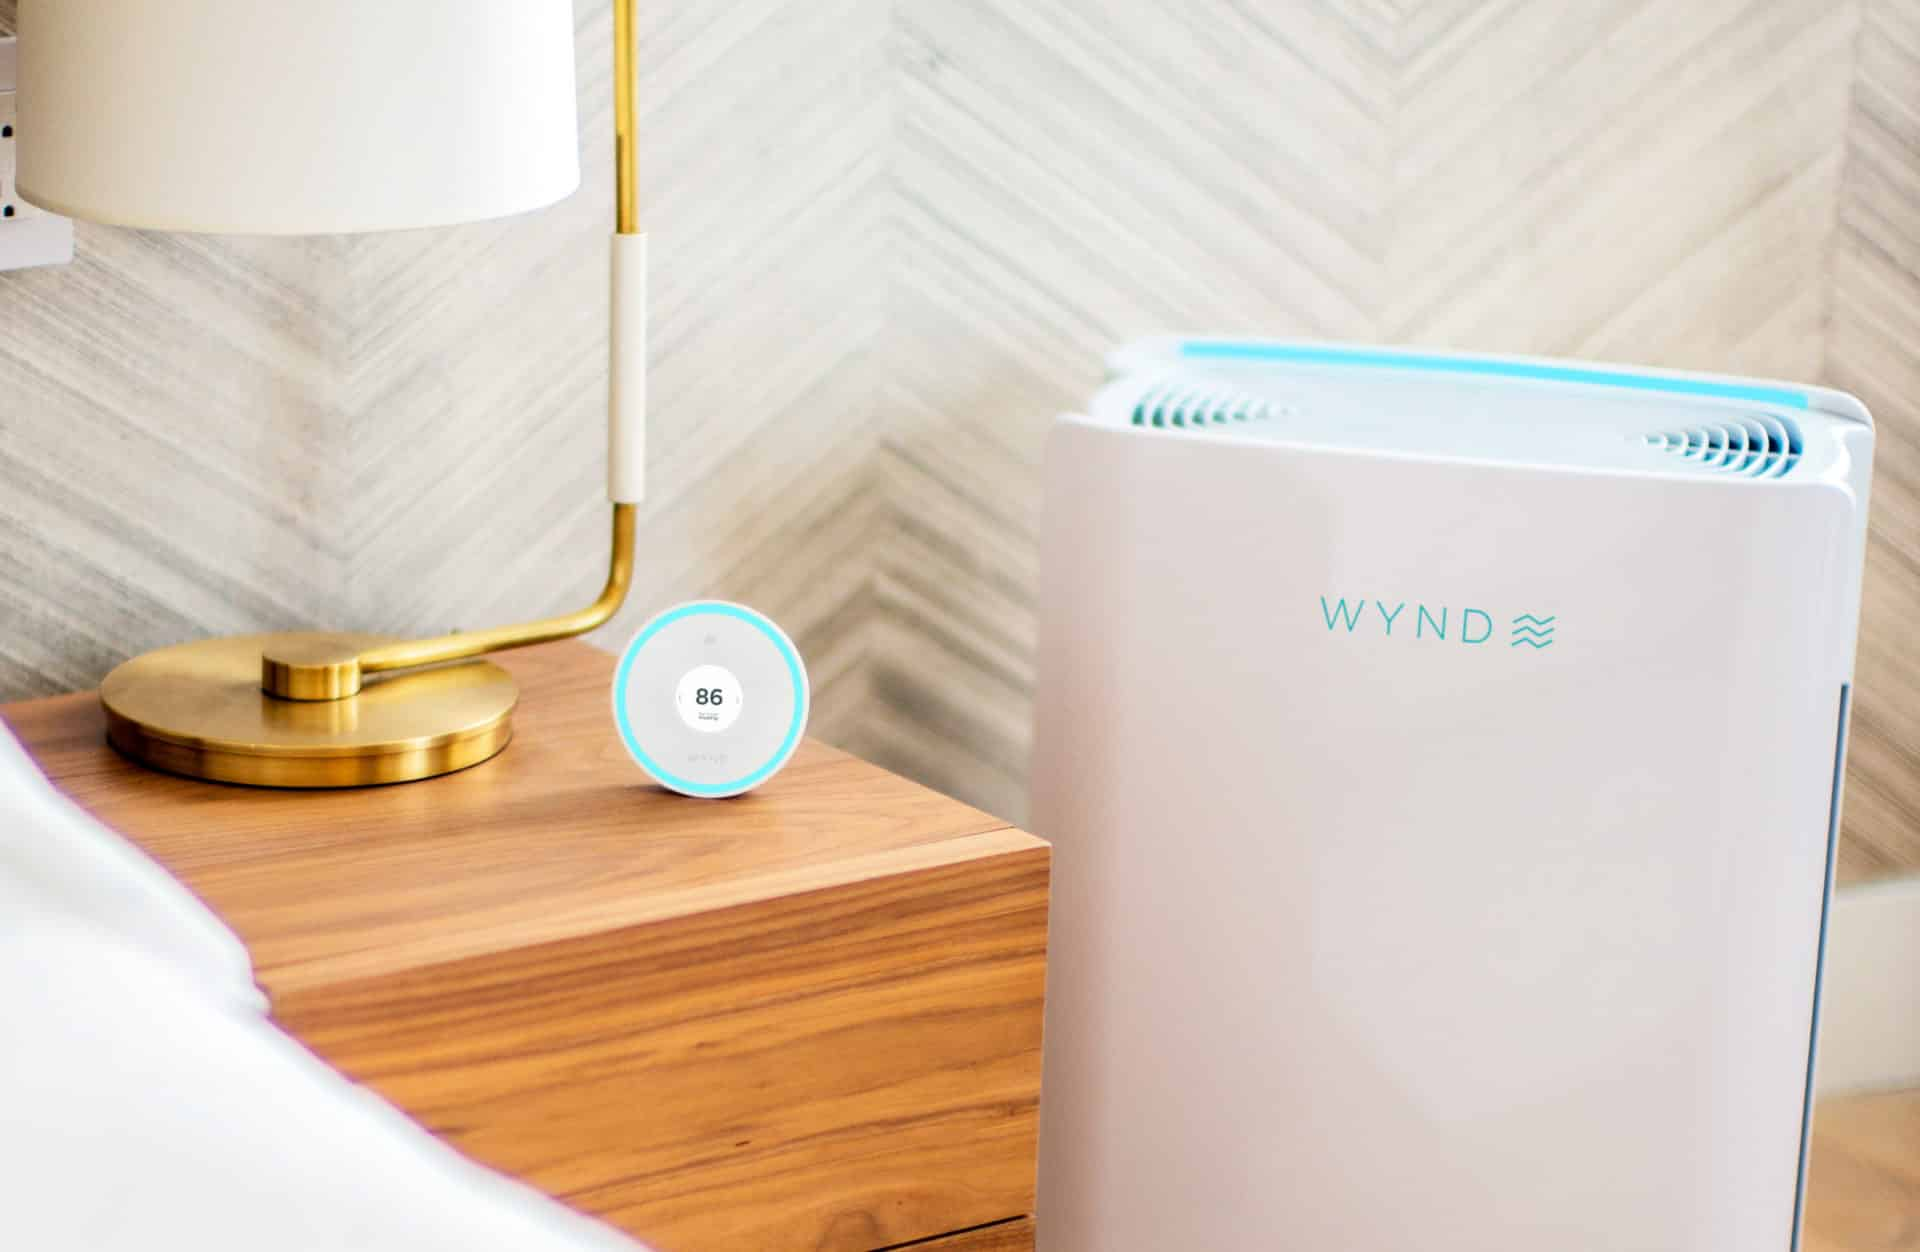 Image of Wynd Halo Home Purifier